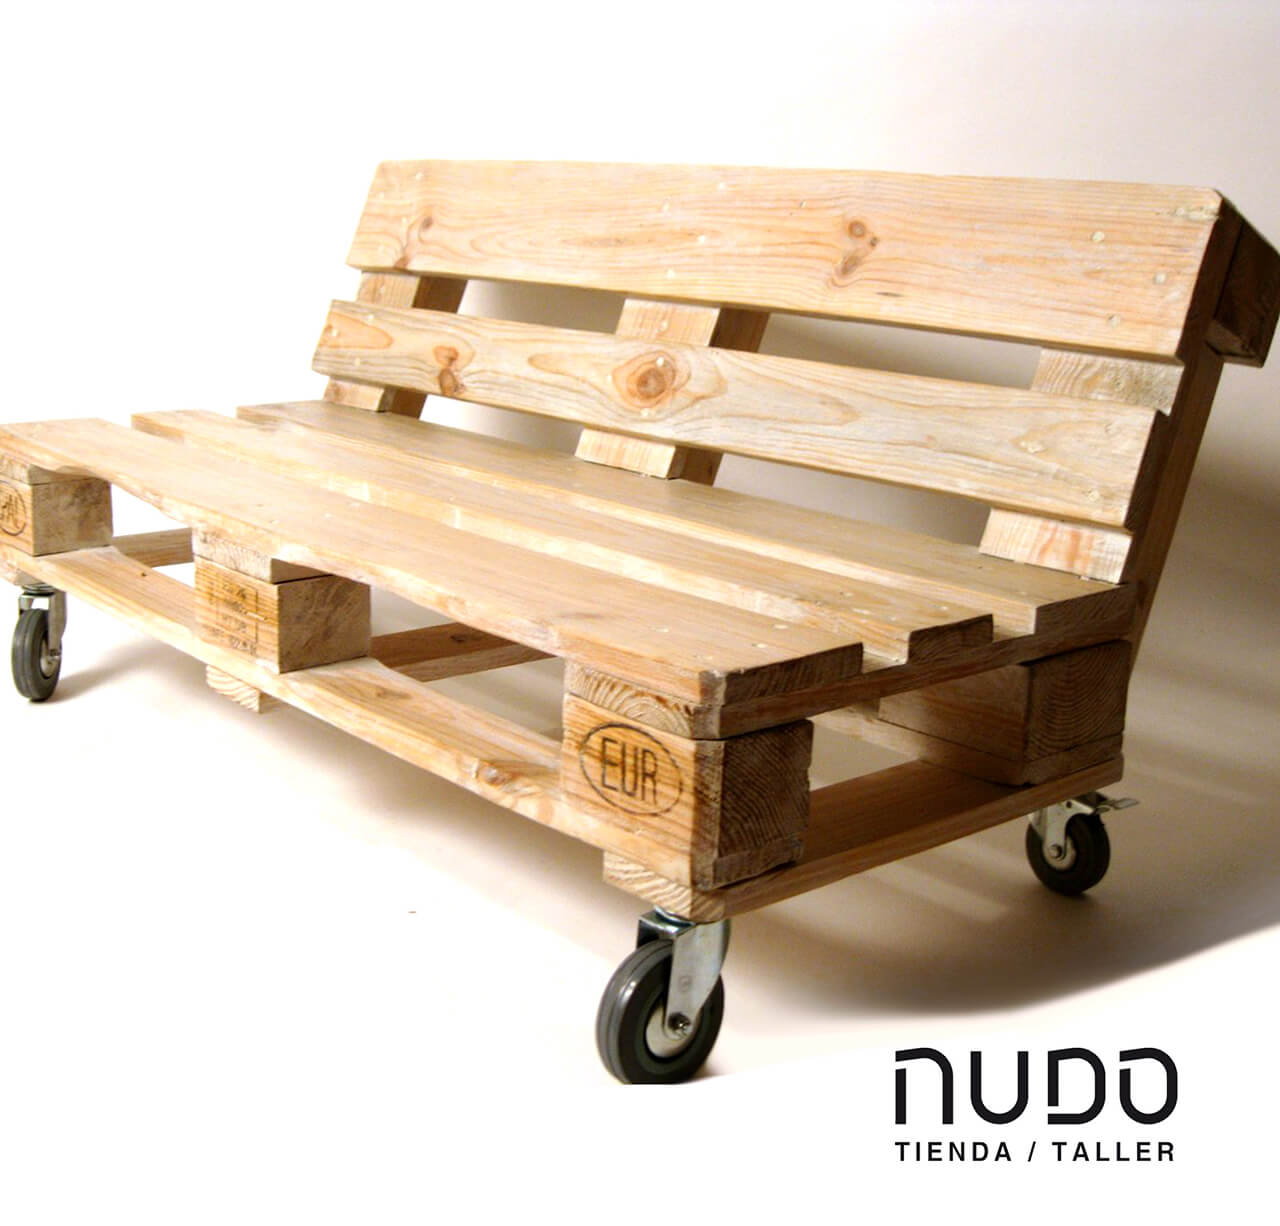 Pallet Bench Ideas Part - 17: Outdoor Pallet Furniture Ideas With Wheels For Moving